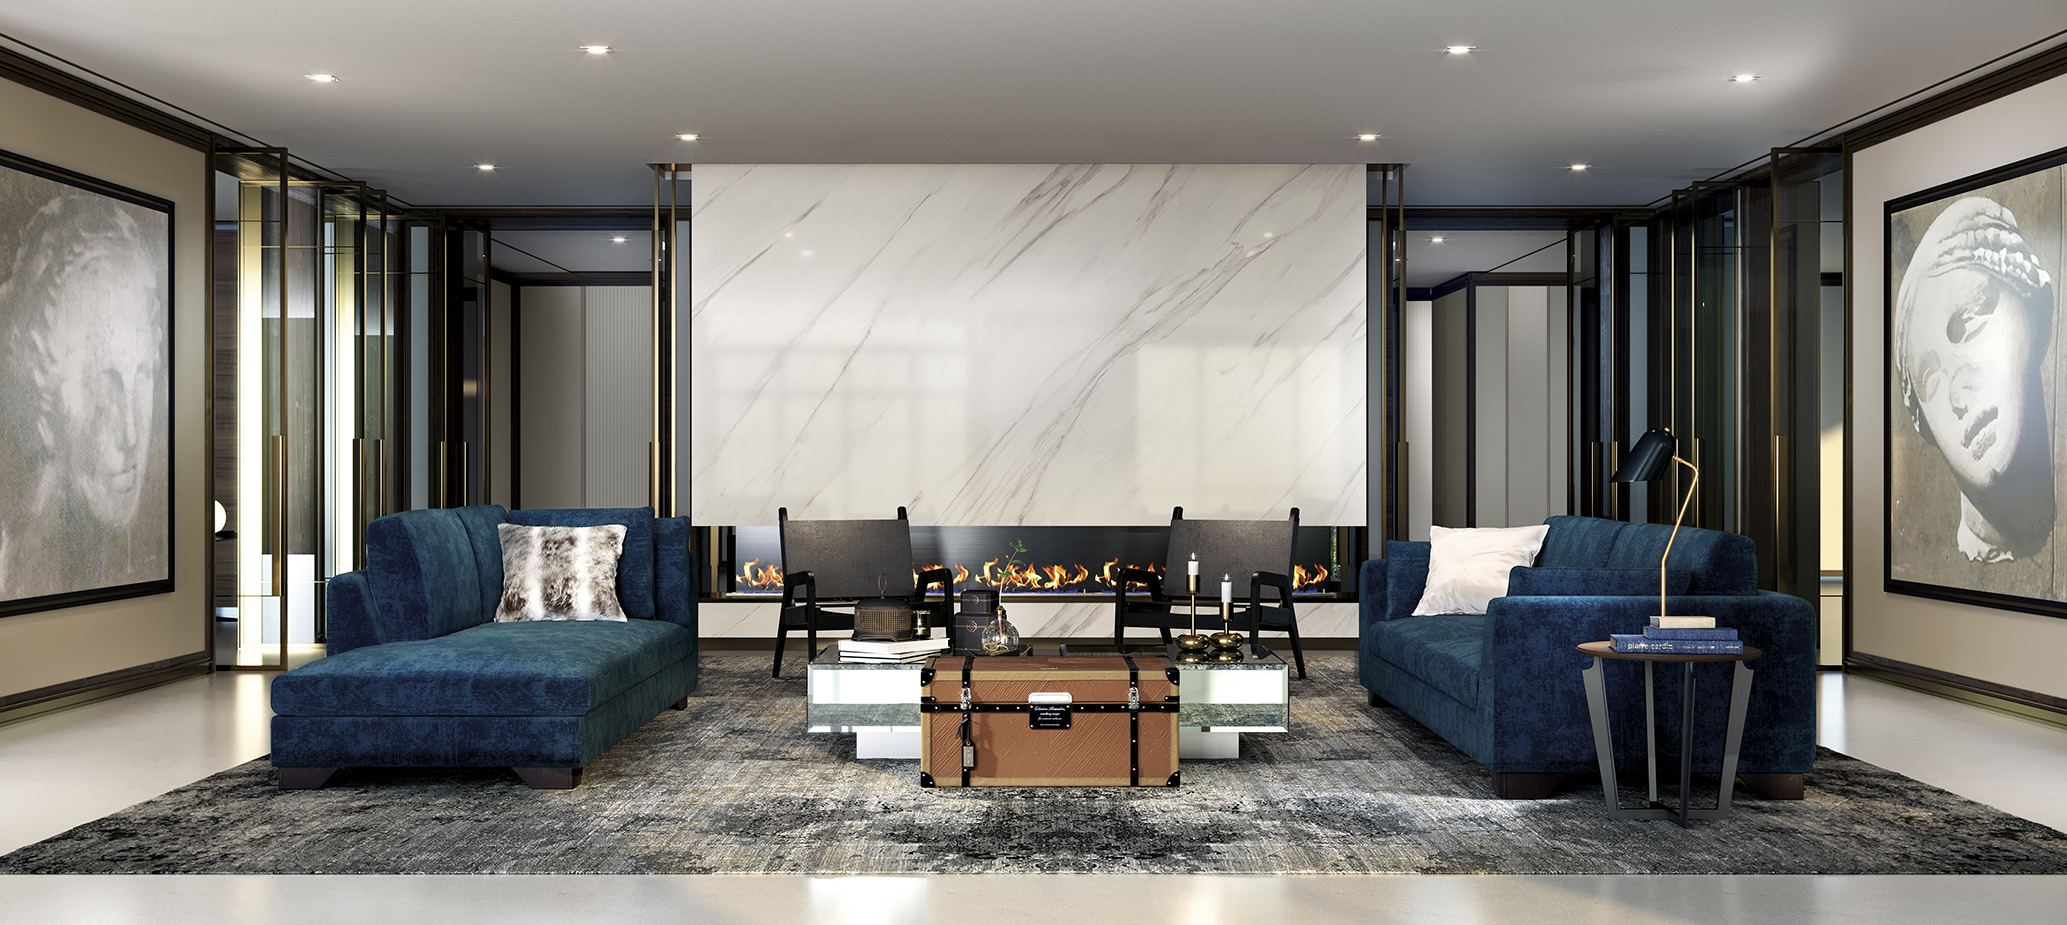 luxury living room furniture sets, contemporary living room furniture, modern living room furniture